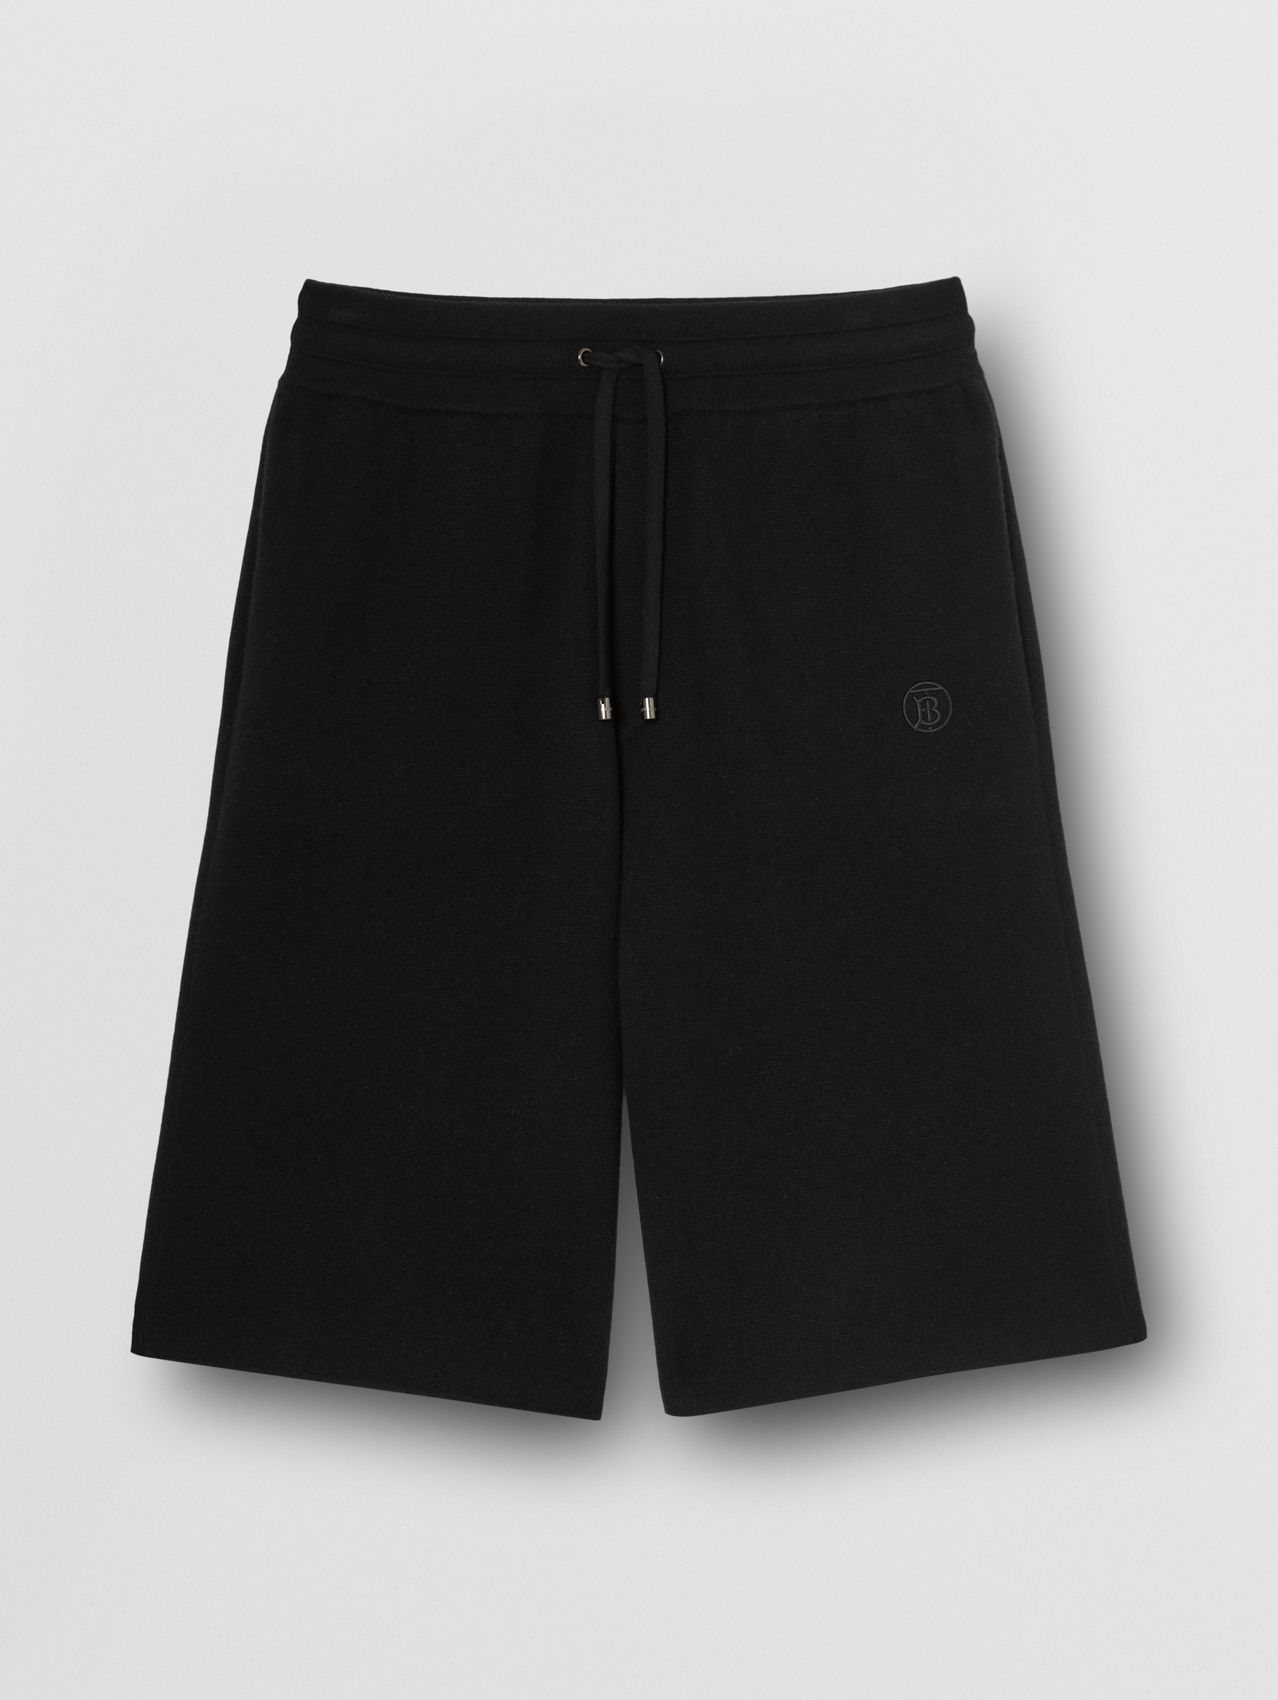 Monogram Motif Cashmere Drawcord Shorts in Black